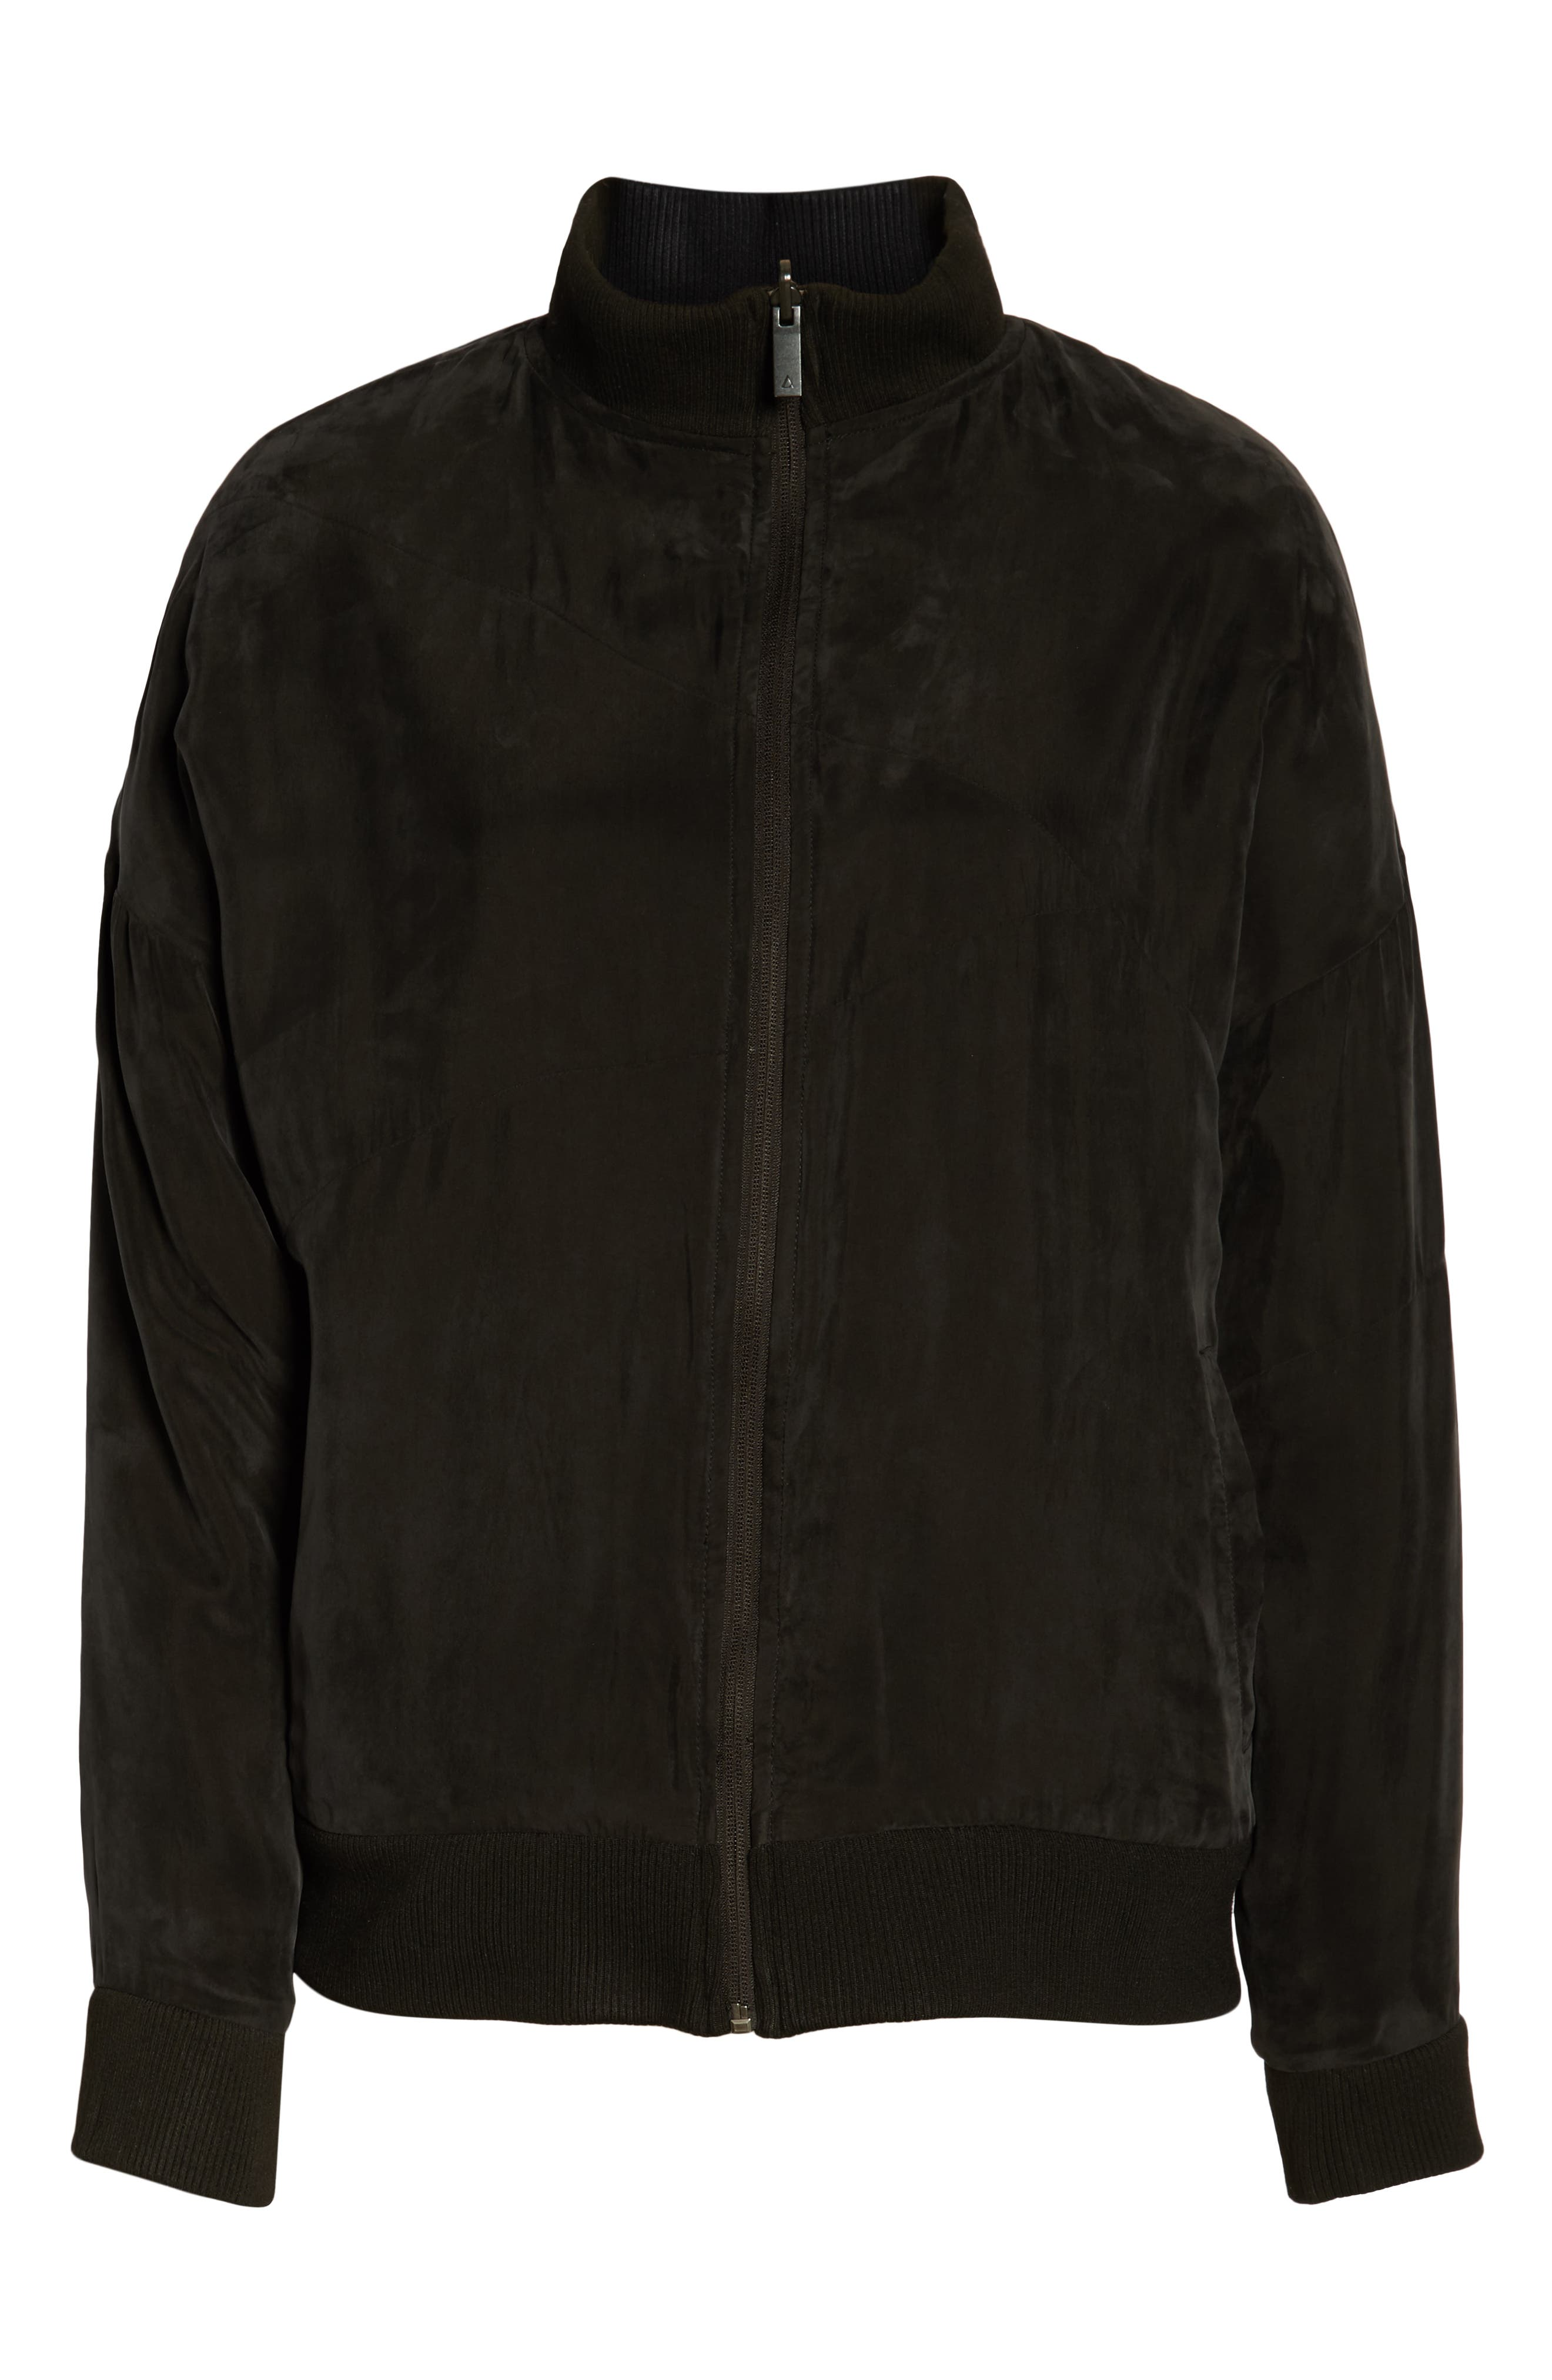 Arcs Reversible Bomber Jacket,                             Alternate thumbnail 7, color,                             BLACK